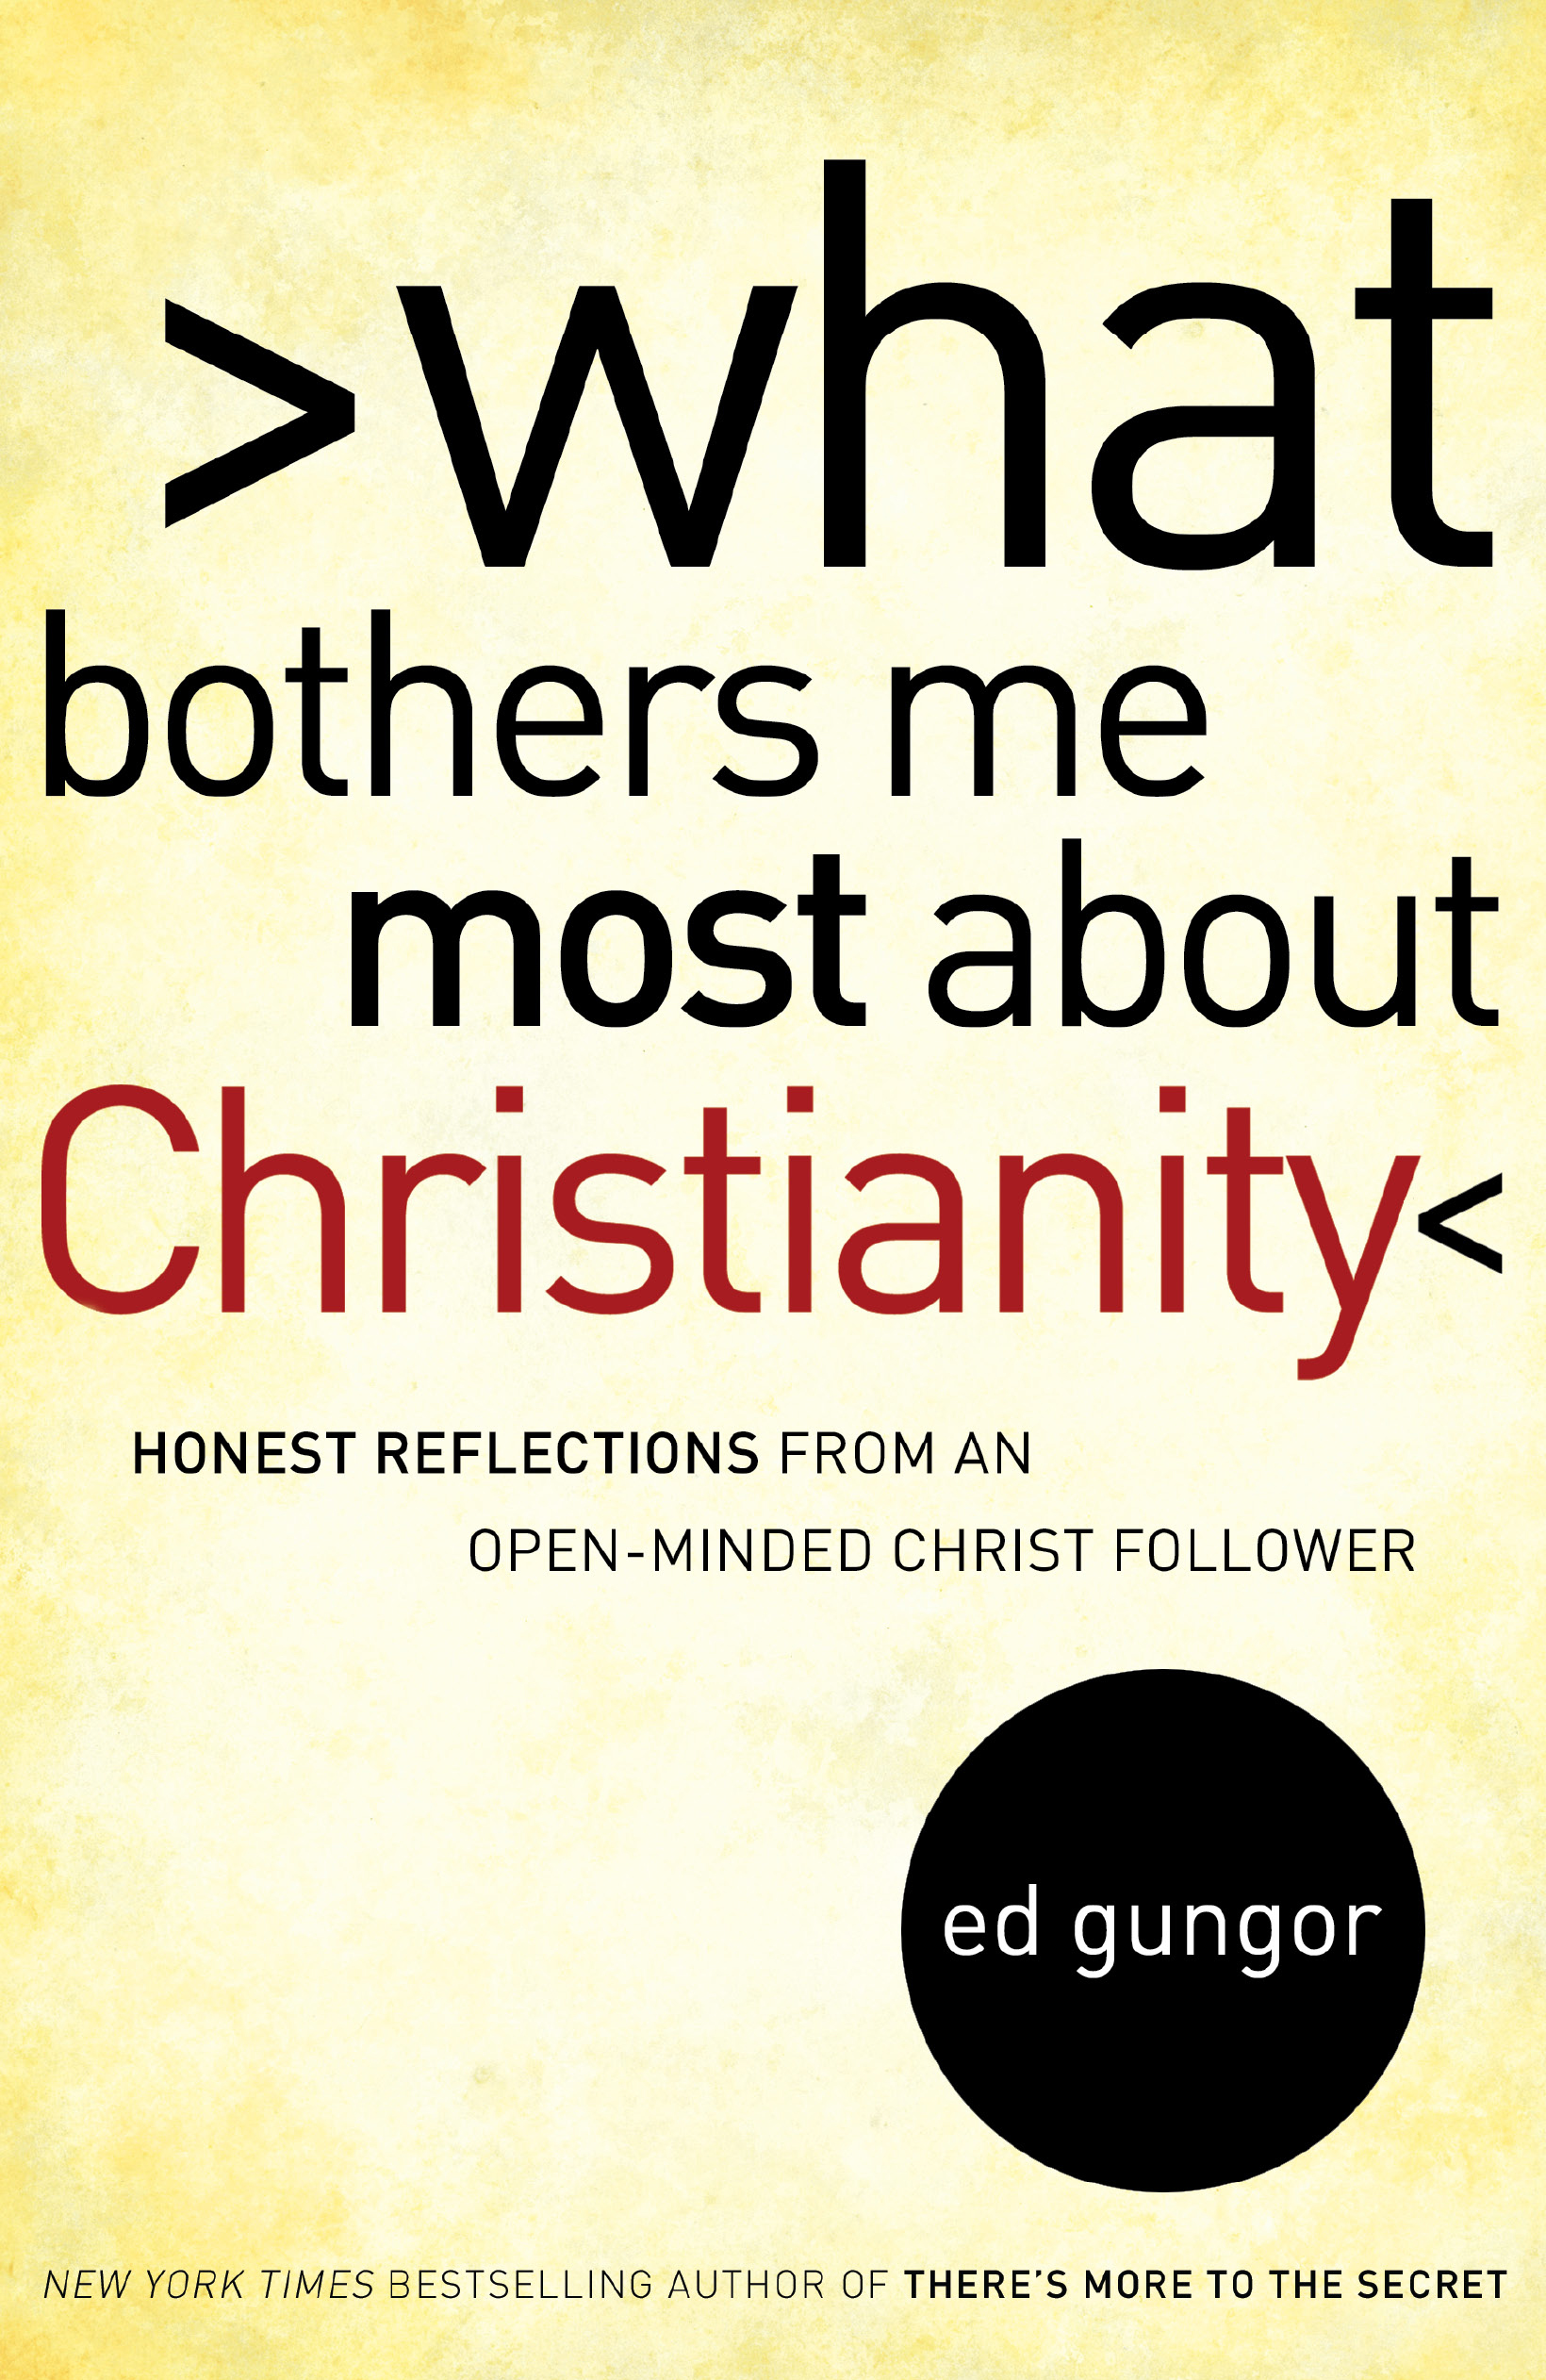 Is it ok for a Christian to write erotica? (Christians only!)?